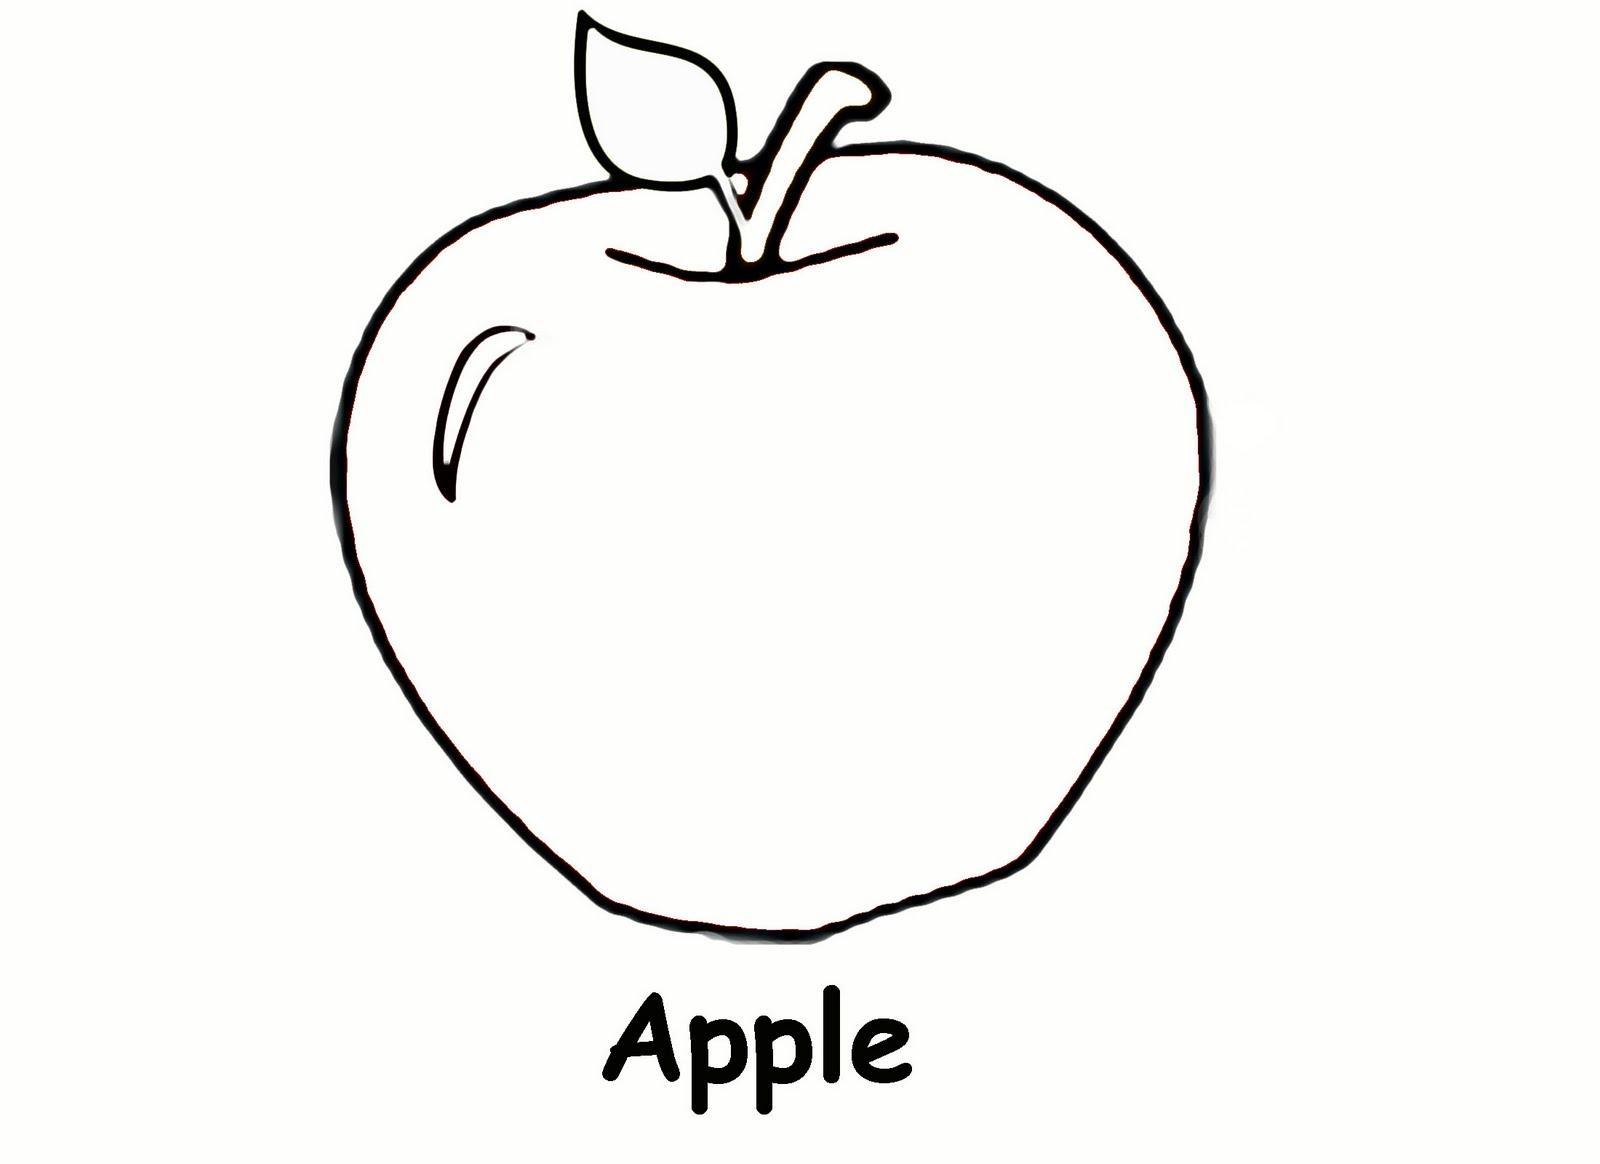 Cartoon Apple Coloring Pages : Free printable apple coloring pages for kids